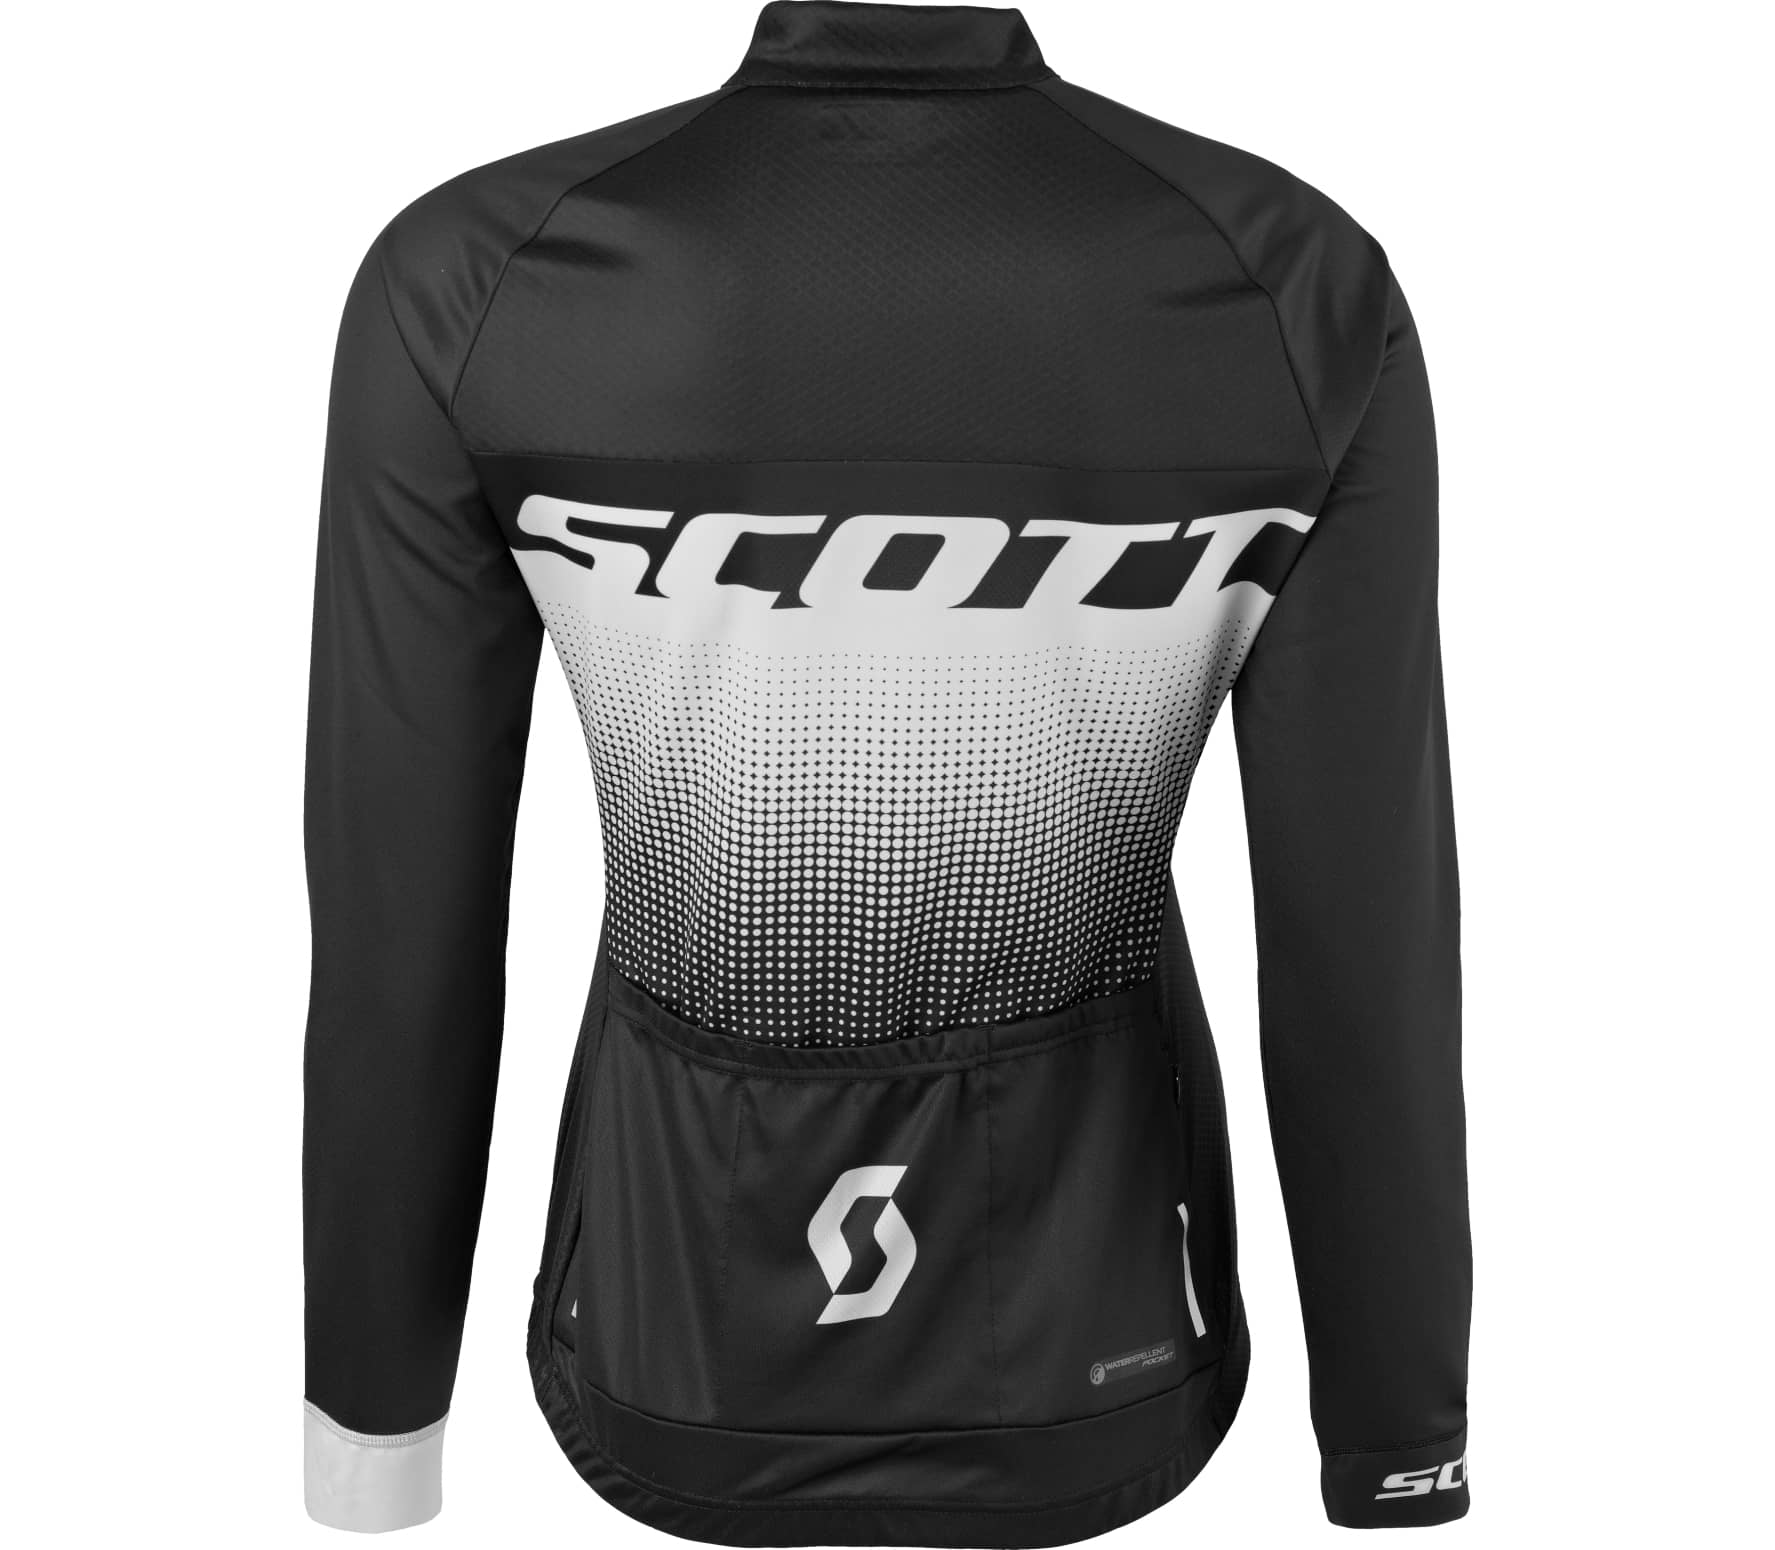 scott rc pro longsleeve damen bike trikot schwarz wei. Black Bedroom Furniture Sets. Home Design Ideas